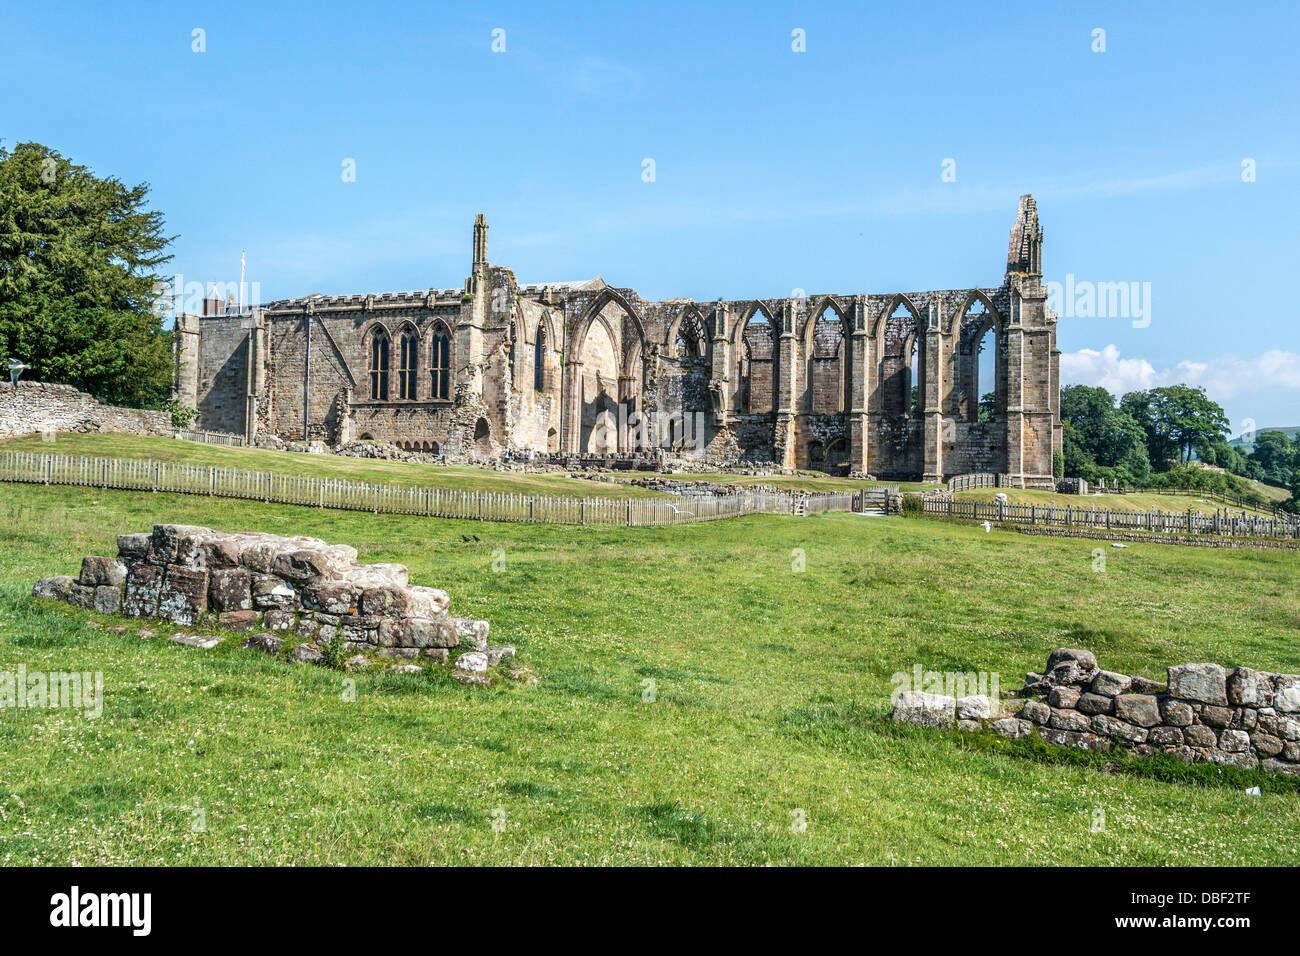 Bolton Priory in Bolton Abbey, Wharfedale North Yorkshire Dales, Augustiner Kloster aus dem 12. Jahrhundert Stockfoto